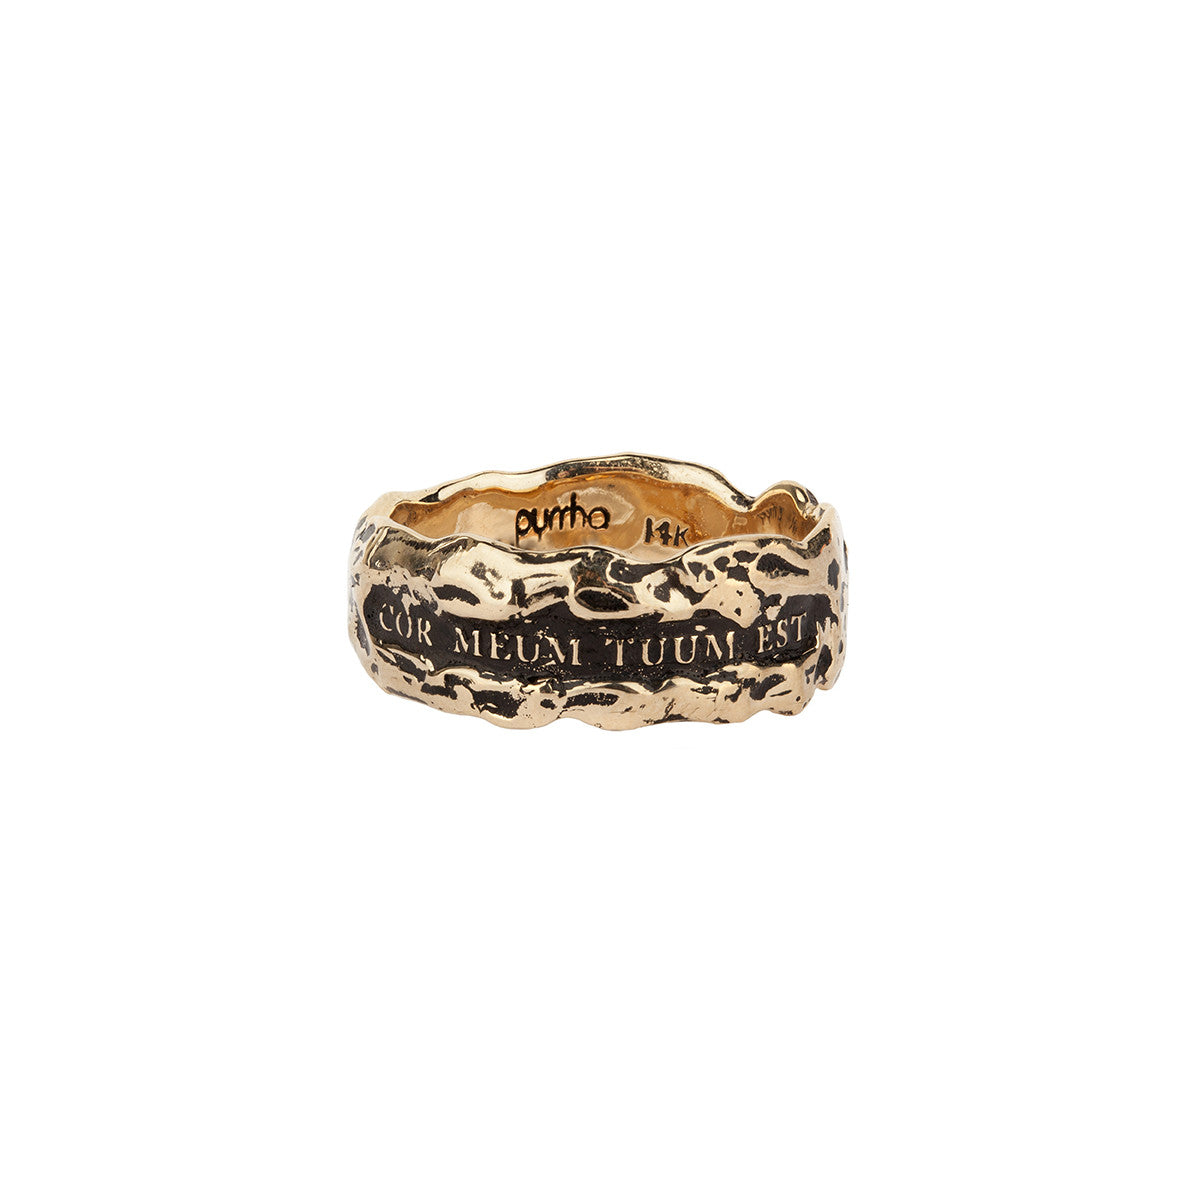 Cor Meum Tuum Est (My Heart is Yours) Wide 14K Gold Textured Band Ring